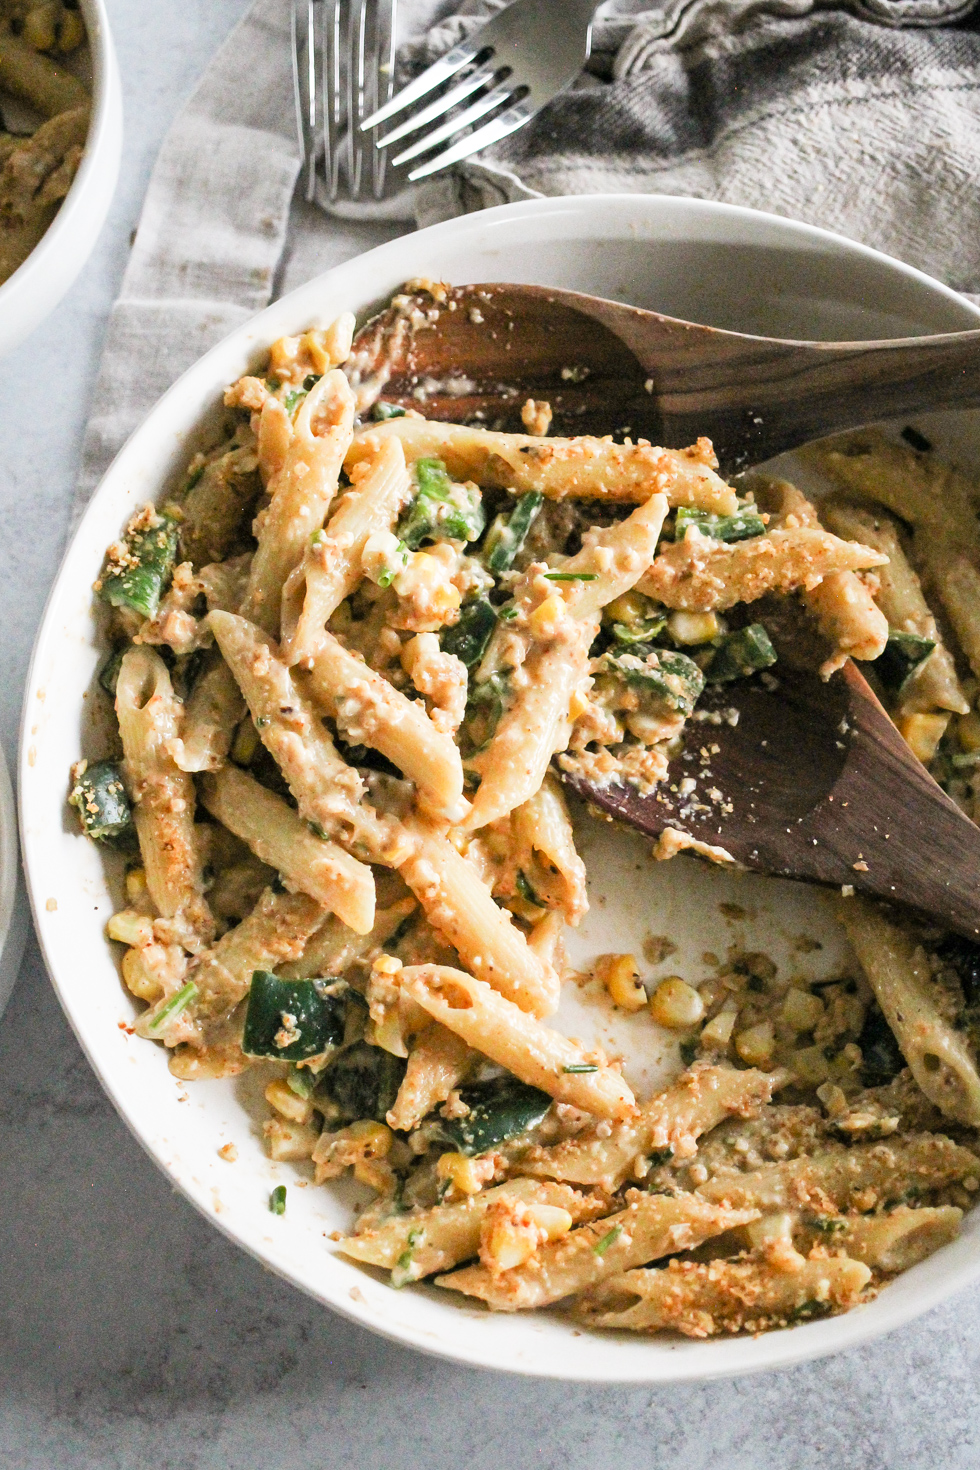 Cheesy pasta in a white bowl with wooden serving spoon.